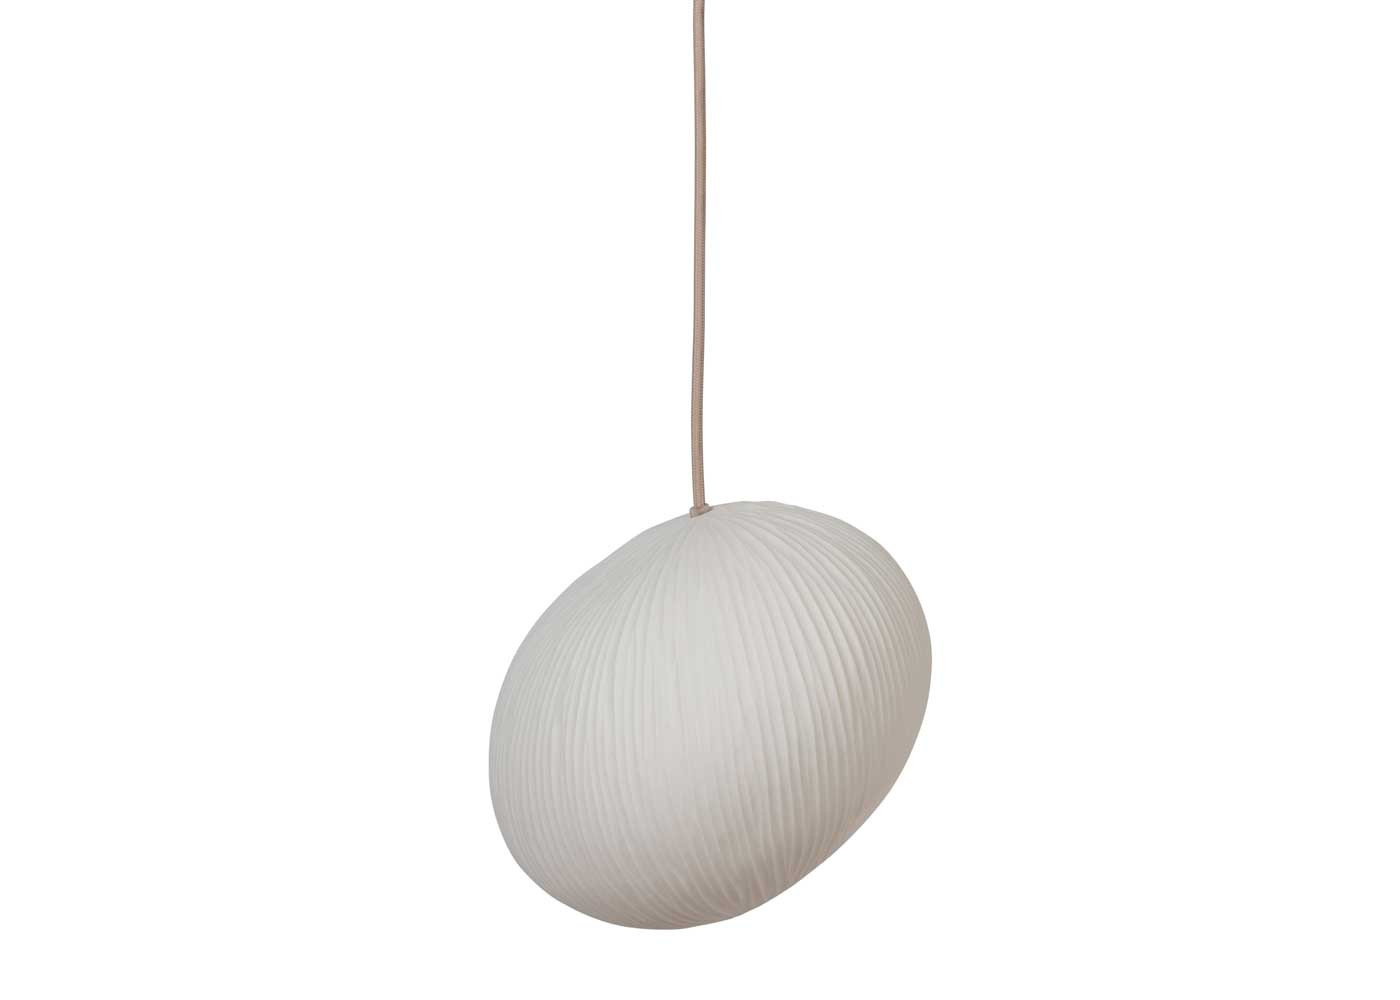 Diploria Single Sphere Pendant Intended For Sussex 1 Light Single Geometric Pendants (Gallery 28 of 30)